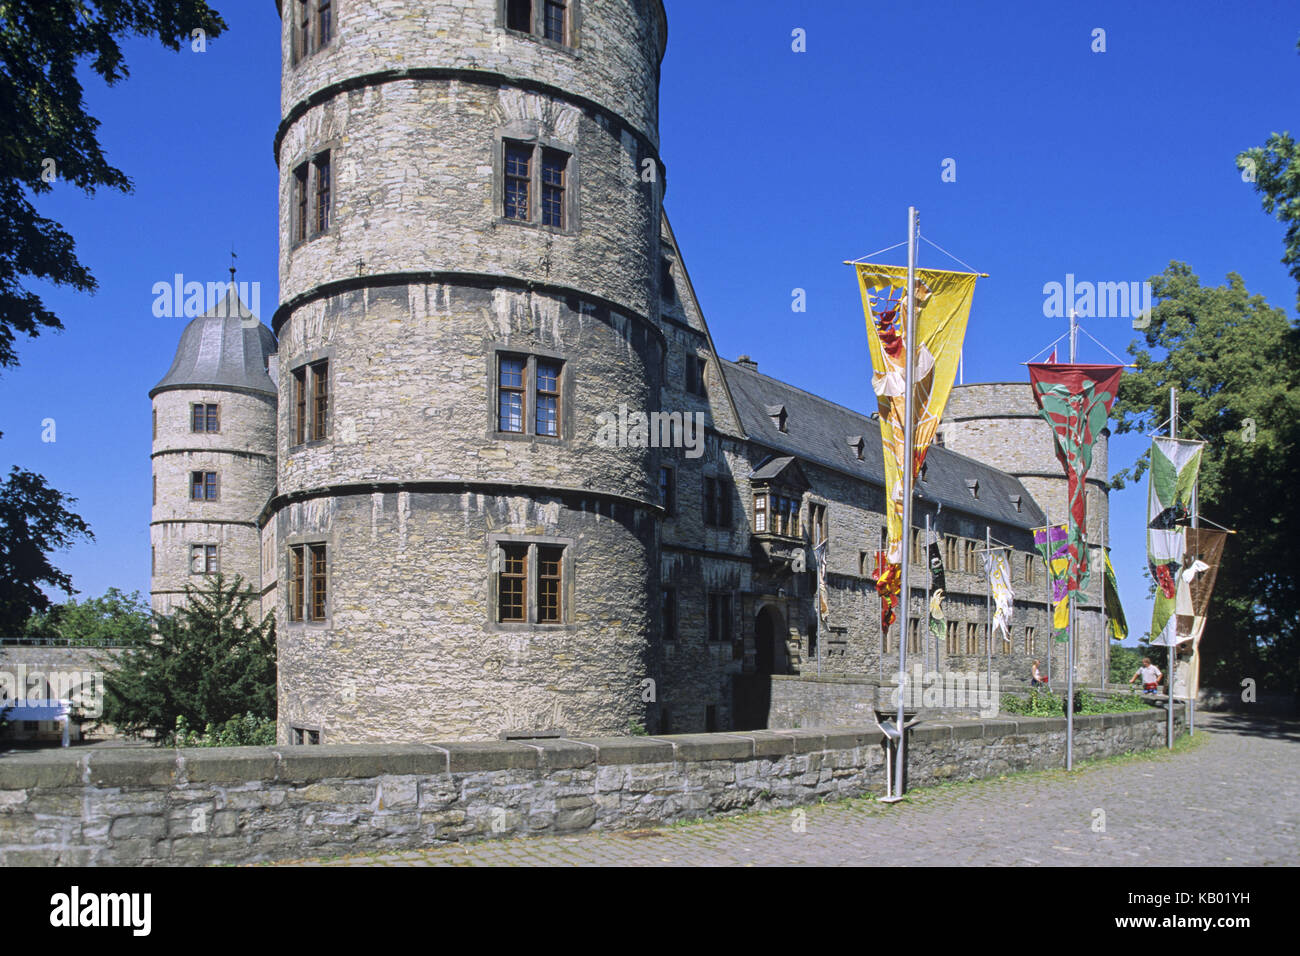 Height castle of castle Wewels, circle Paderborn, North Rhine-Westphalia, Germany, Europe, building, castle, structure, - Stock Image